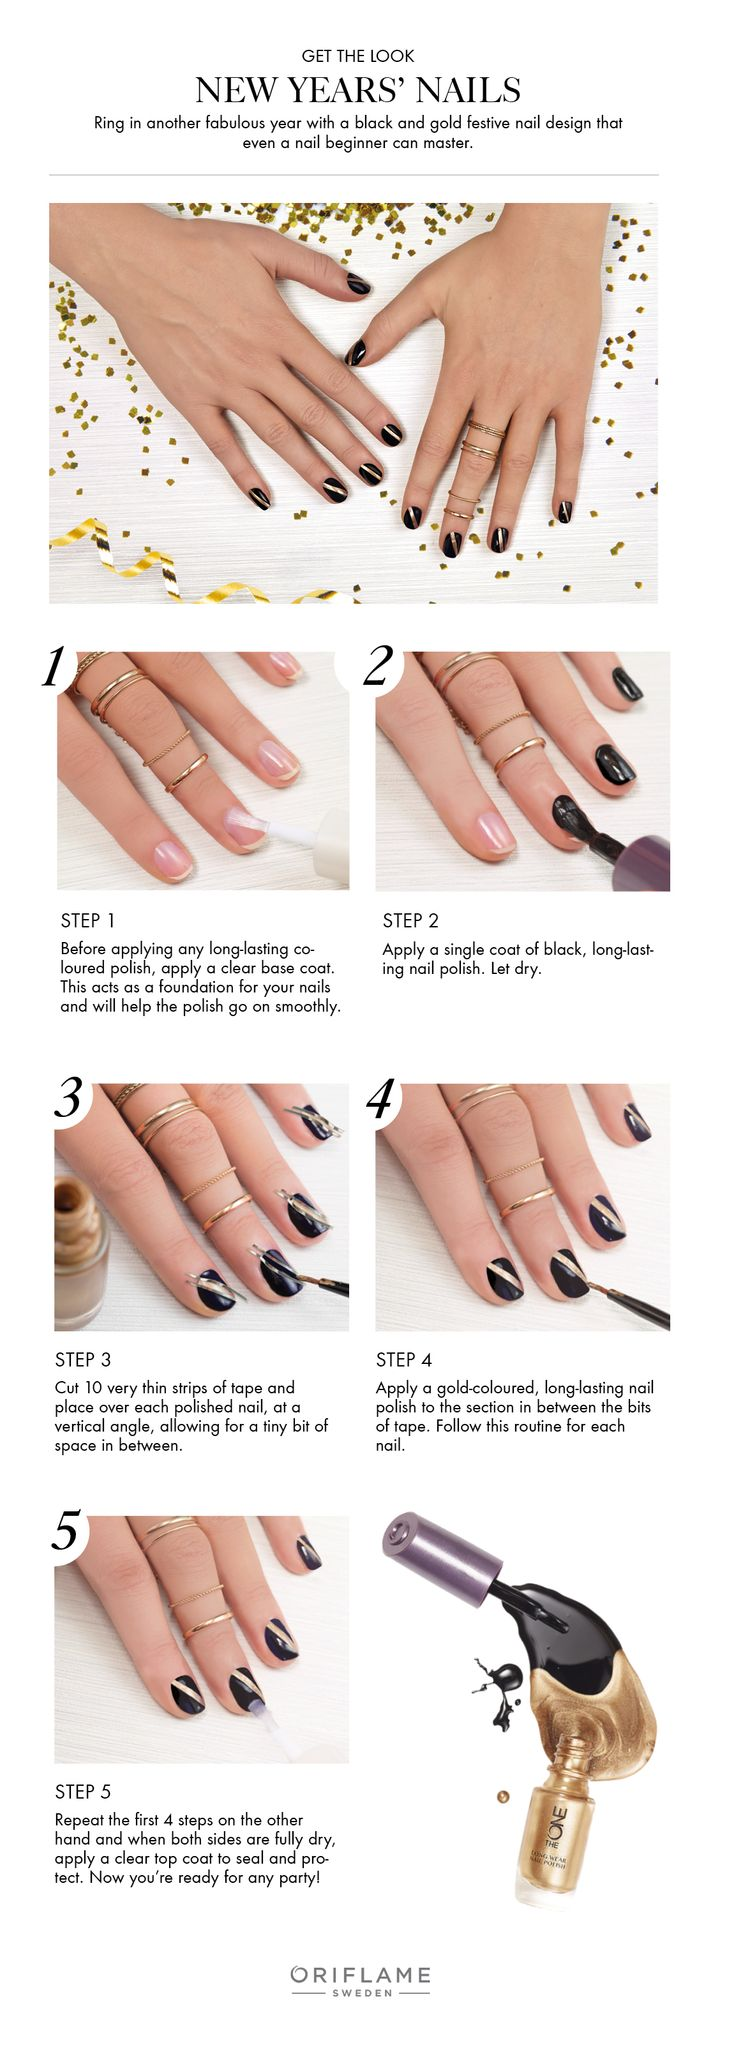 Ring in another fabulous year with a black and gold festive nail design that even a nail beginner can master!